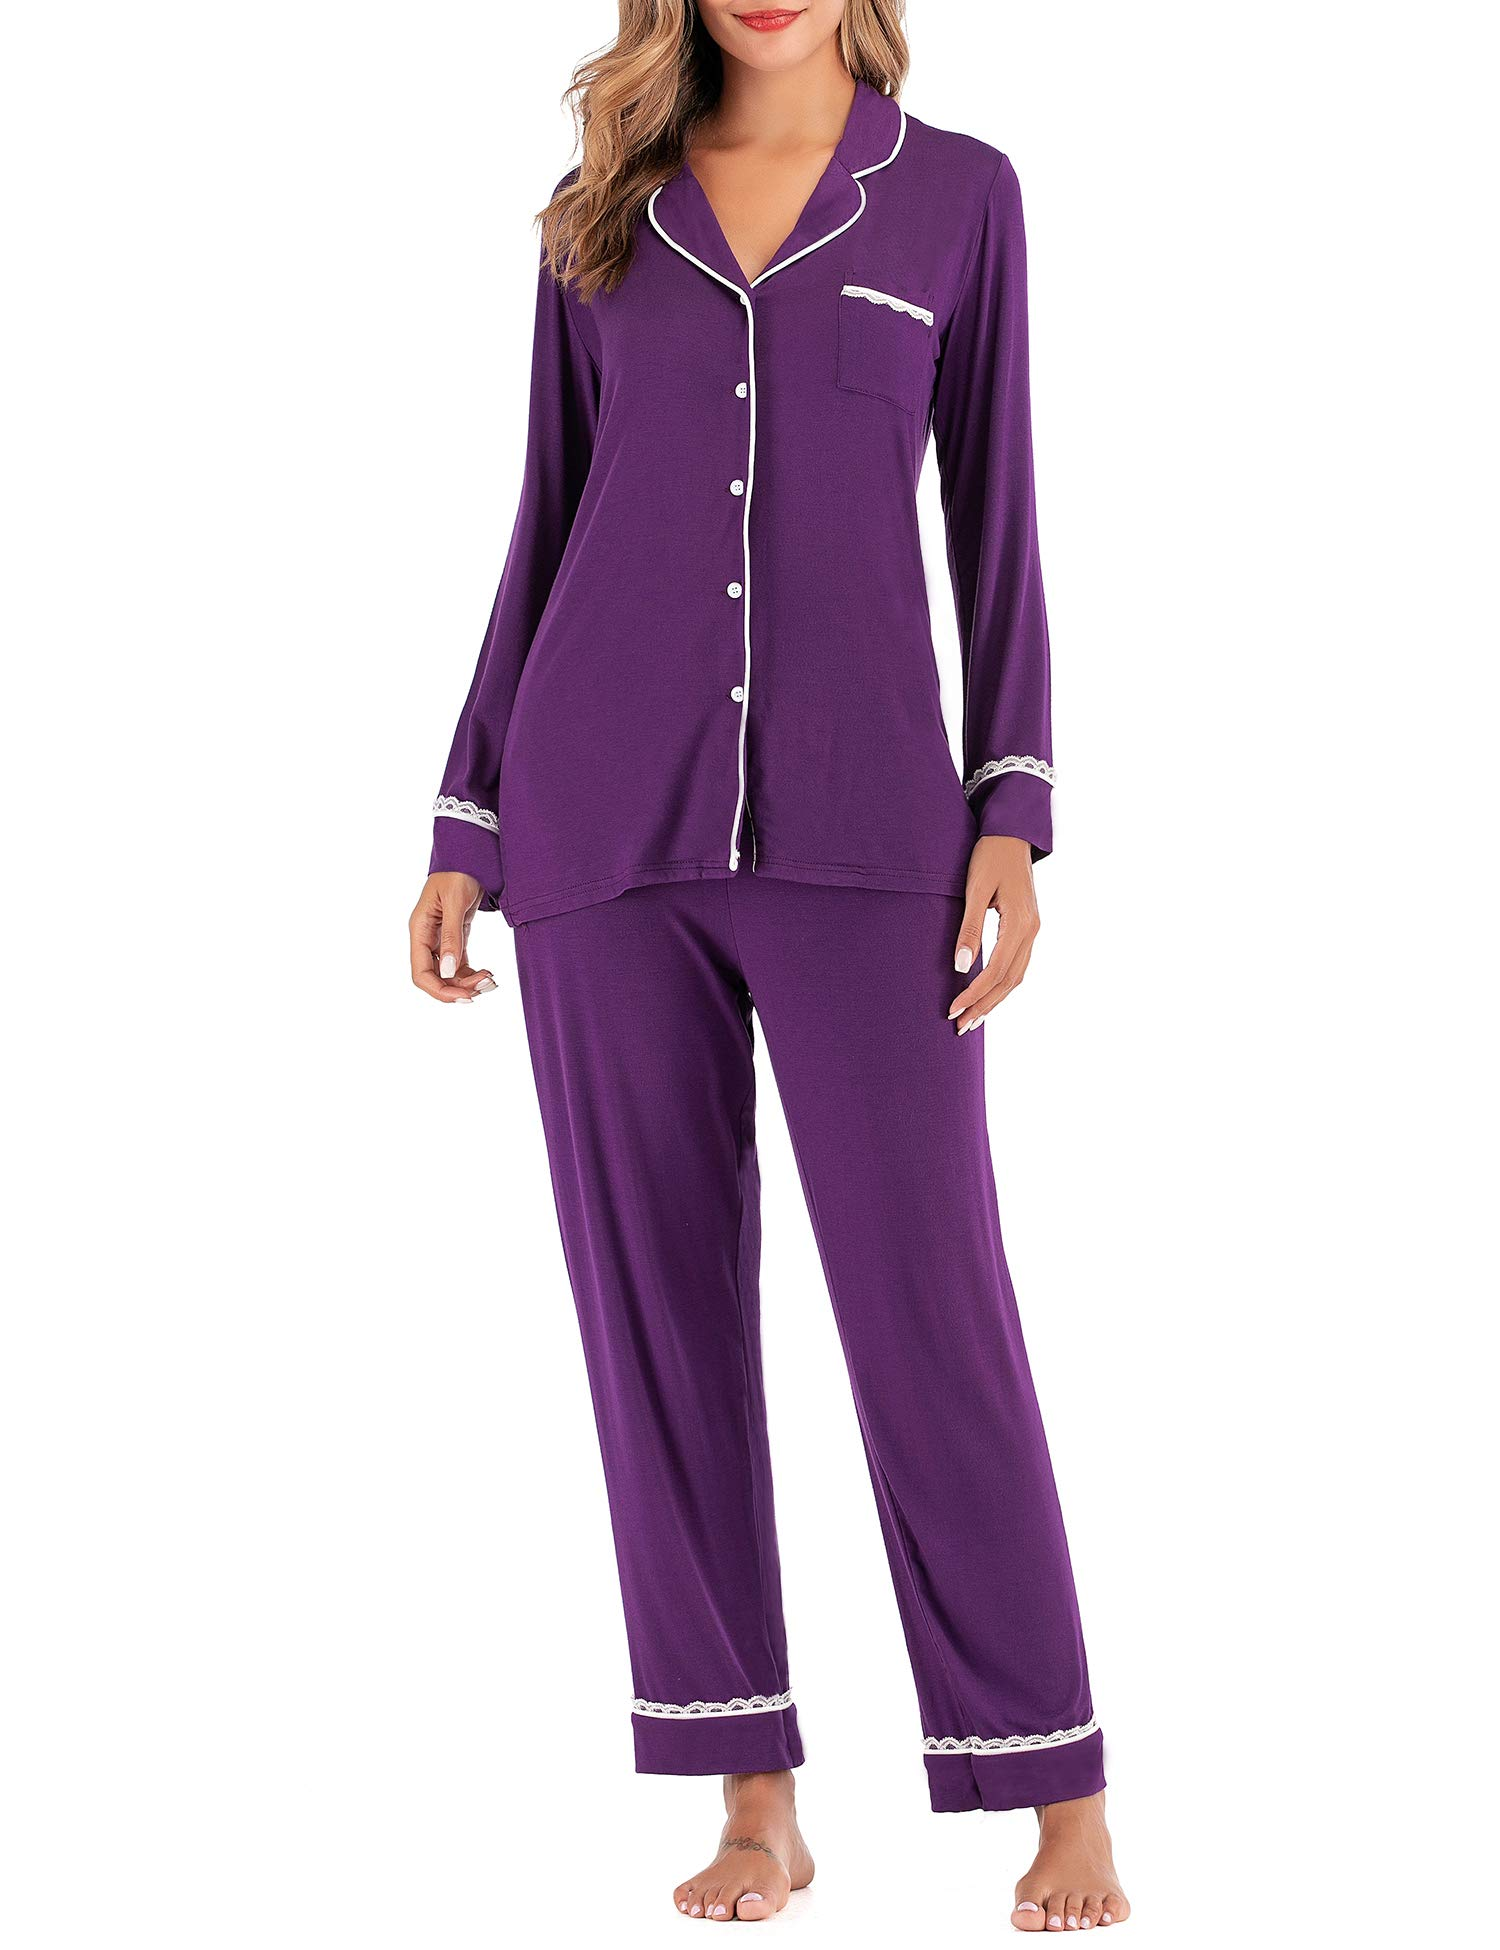 DLOREUK Women's Pajamas Set, Long Sleeve Cotton Sleepwear Button Down Nightwear Soft Pj Lounge Sets S-XXL